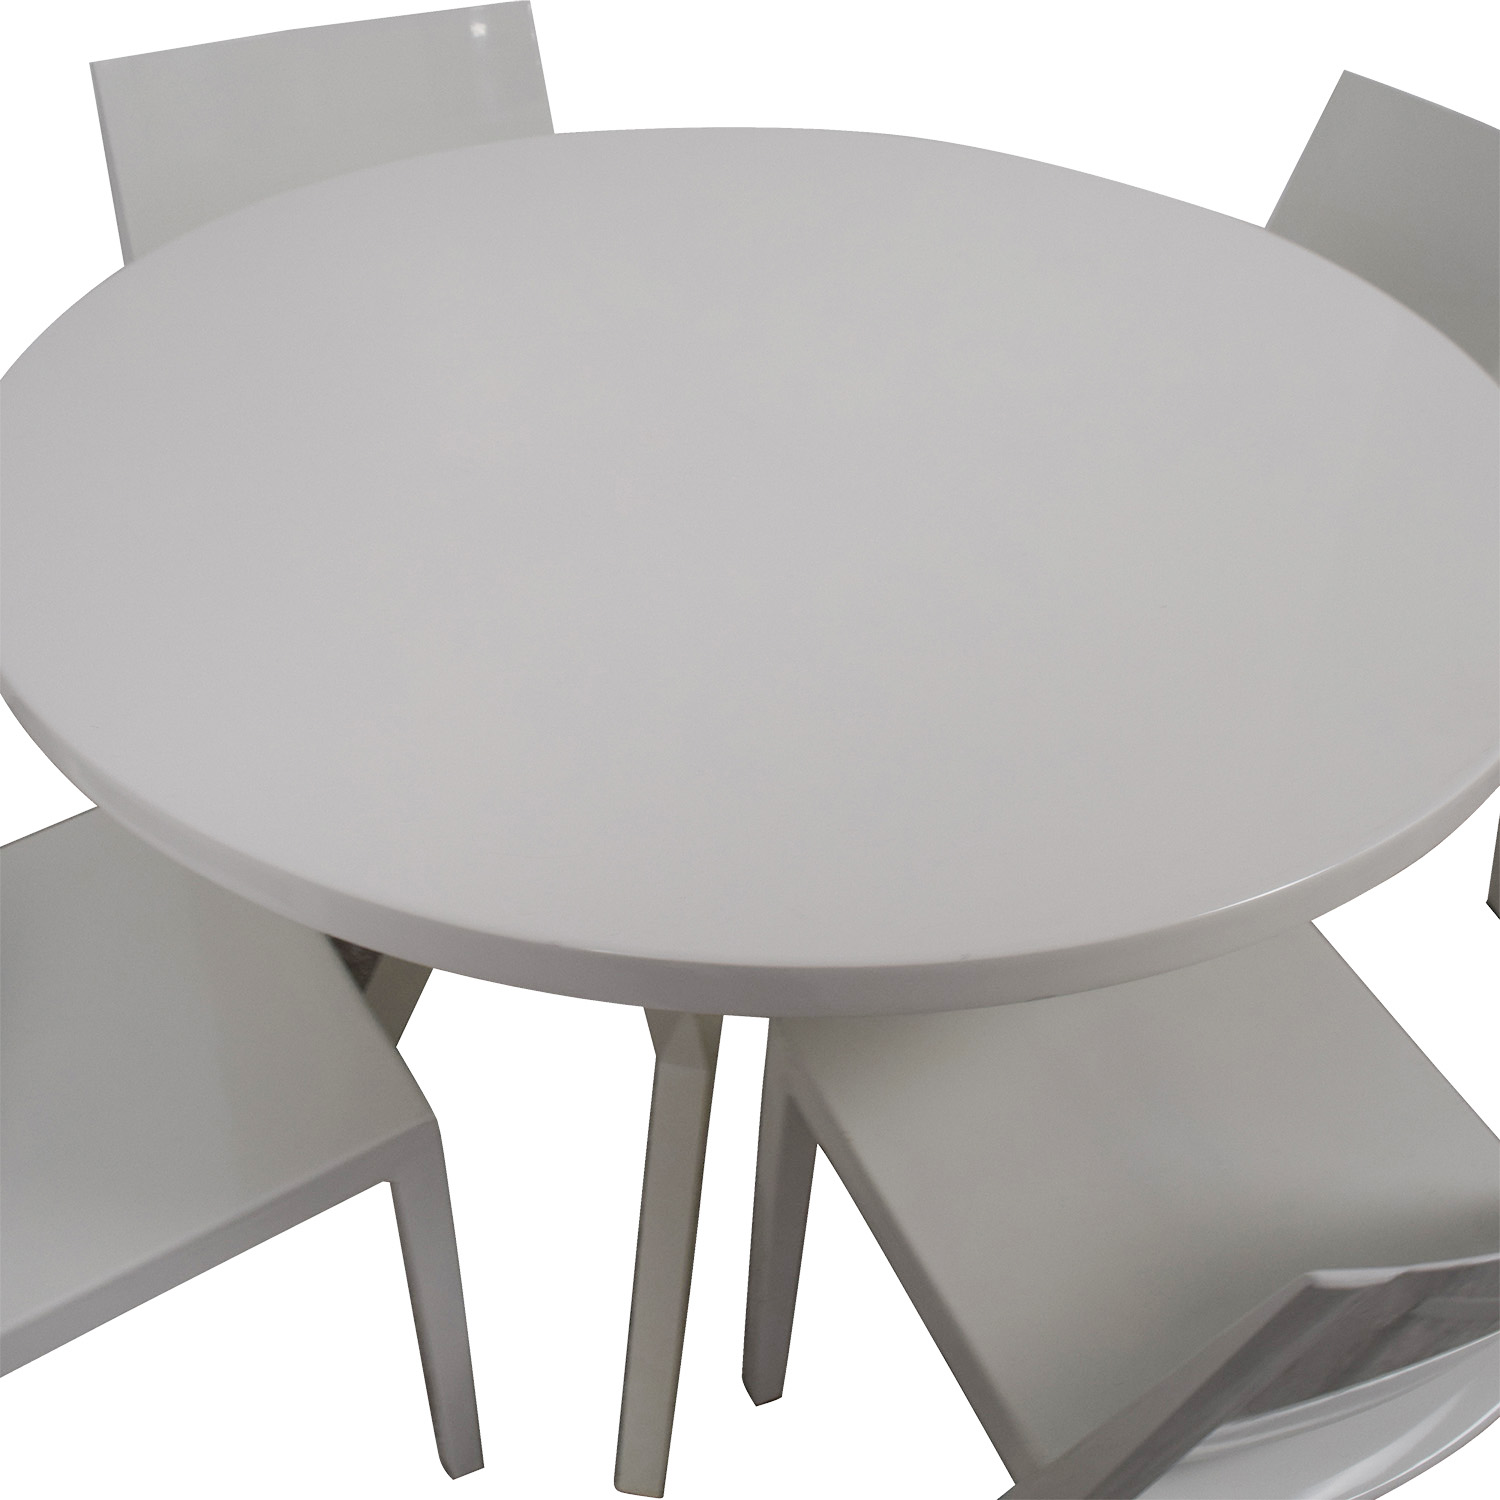 Crate And Barrel Dining Sets: Crate & Barrel Crate & Barrel Round White Dining